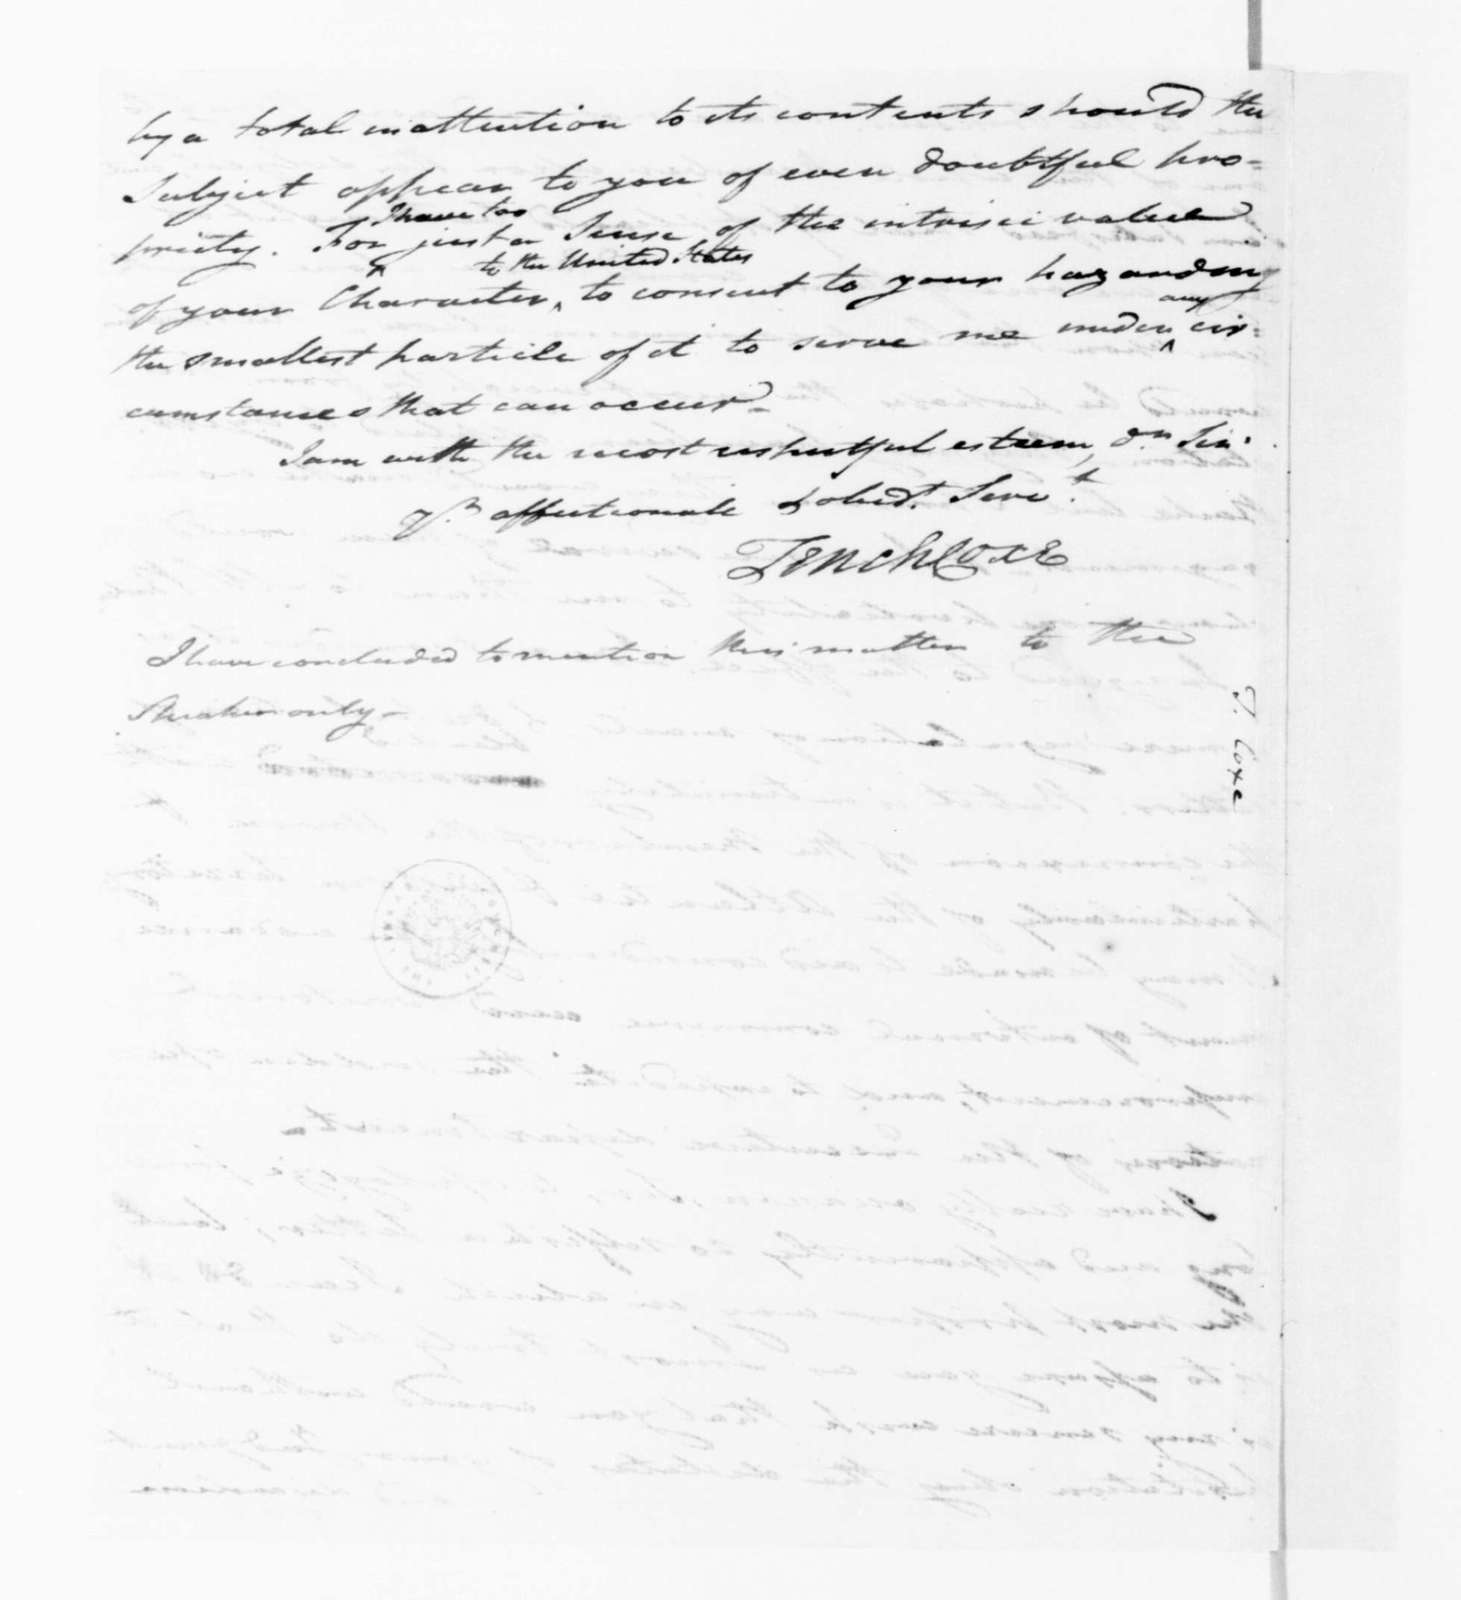 Tench Coxe to James Madison, September 17, 1789.